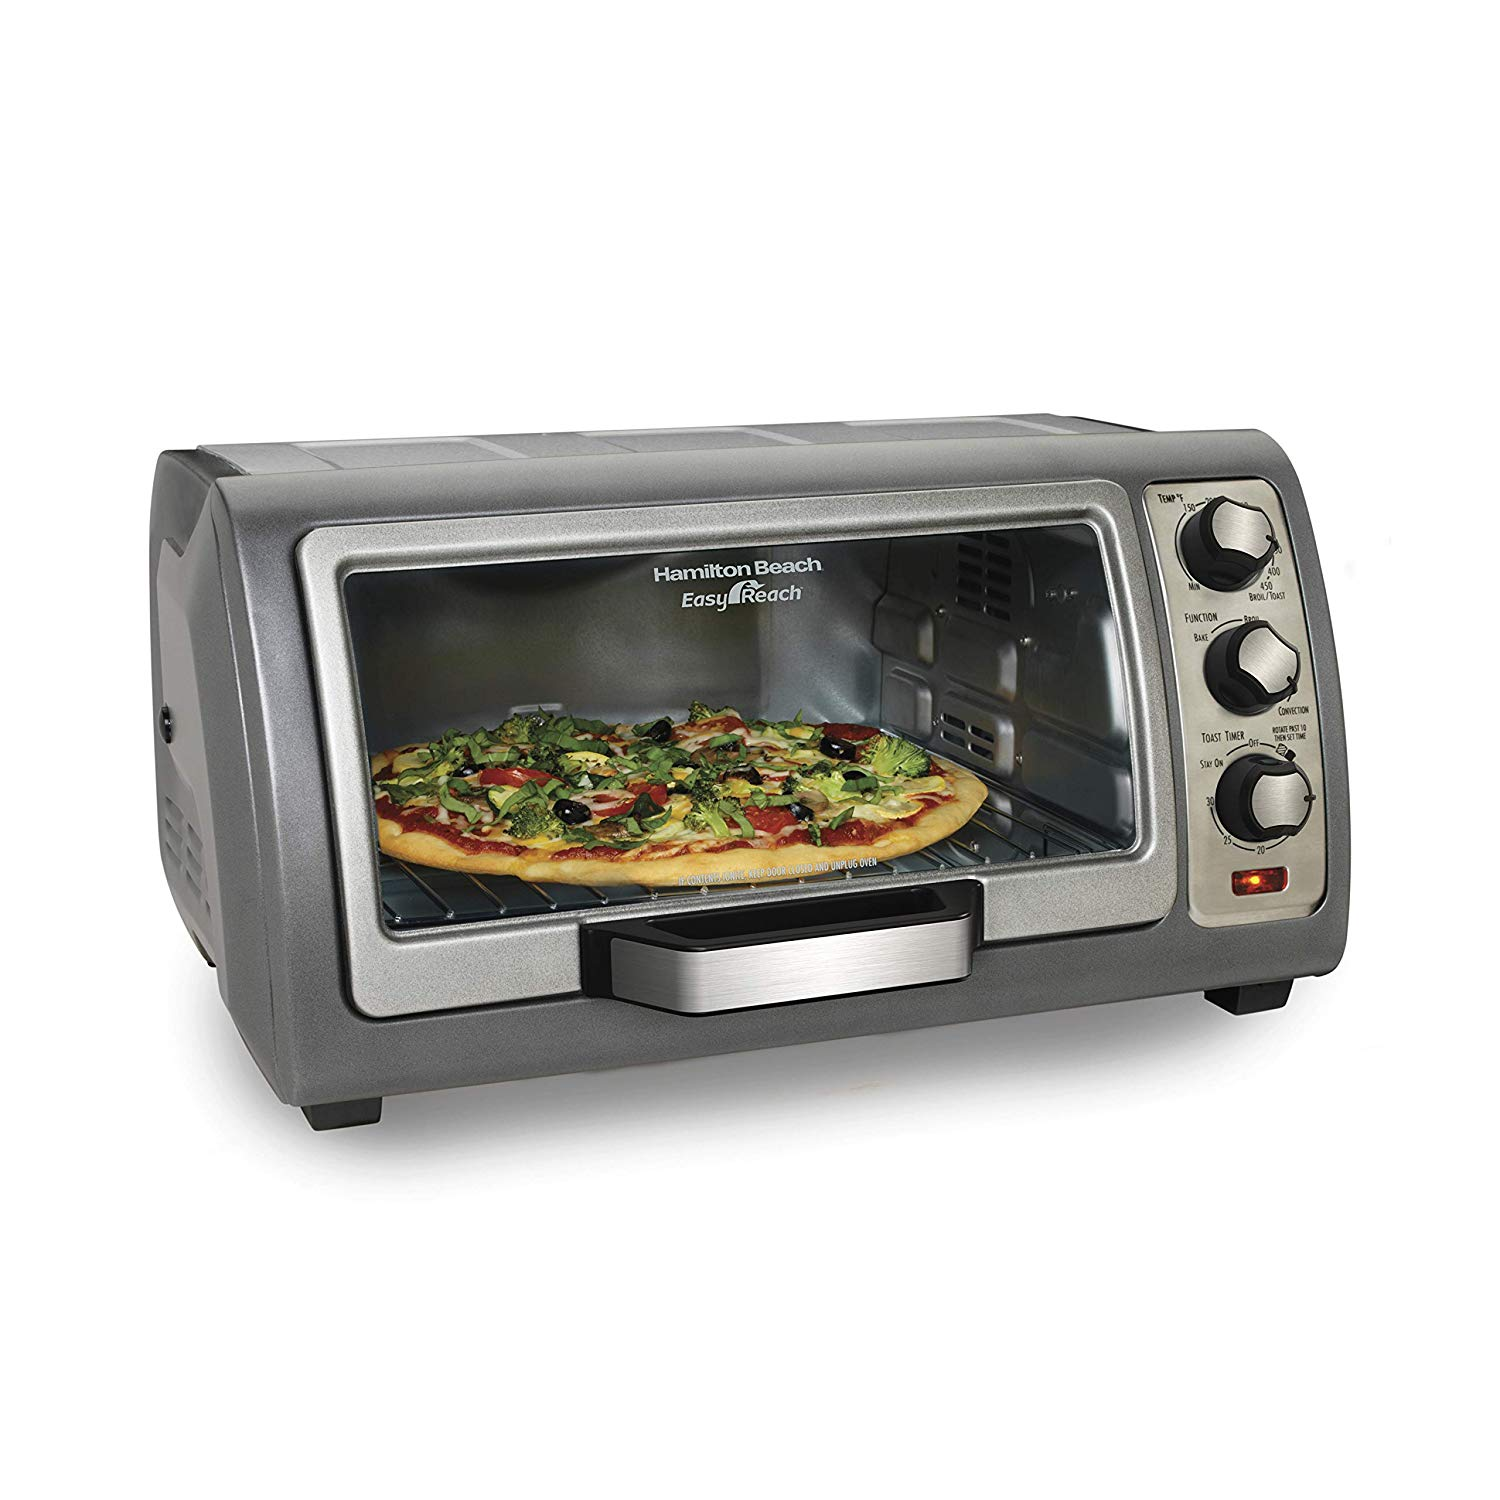 Hamilton Beach Countertop Toaster Oven, Easy Reach with Roll-Top Door, 6-Slice, Convection (31123D)